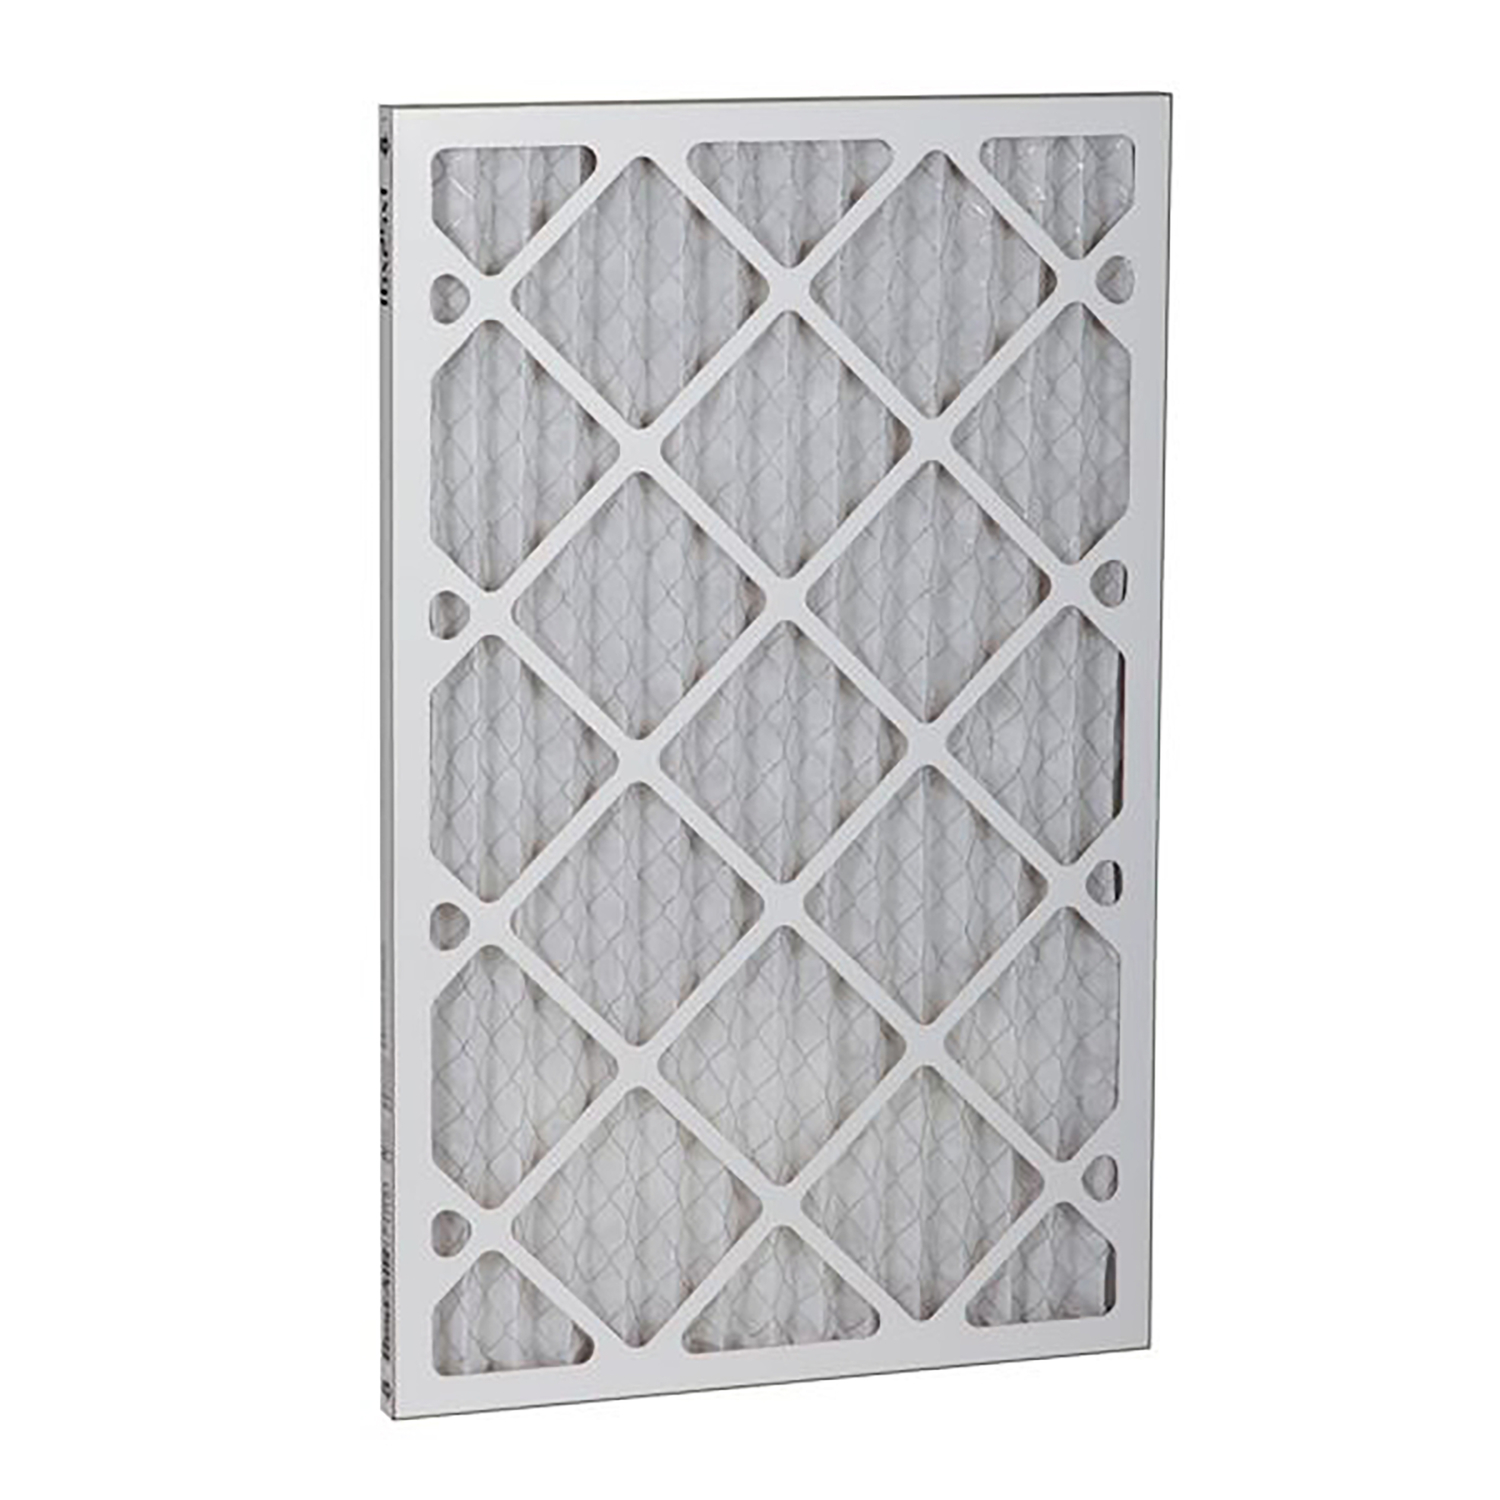 BestAir  24 in. W x 20 in. H x 1 in. D 8 MERV Furnace Filter